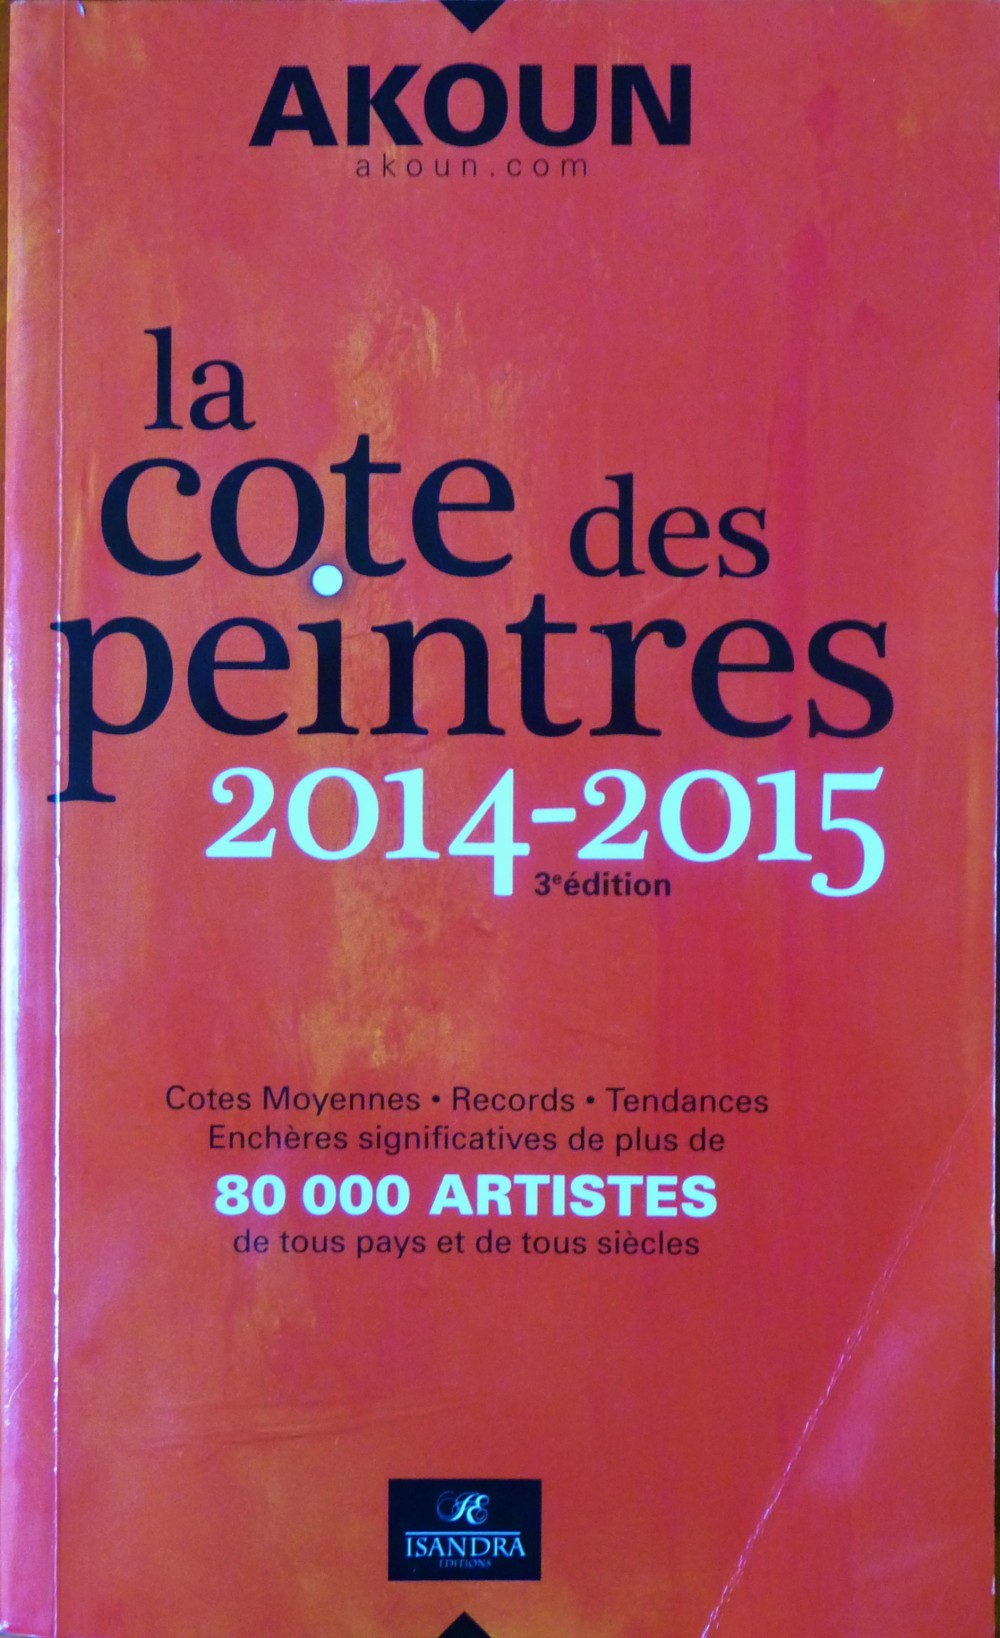 Publications jacqueline gagnes deneux for Cotation akoun